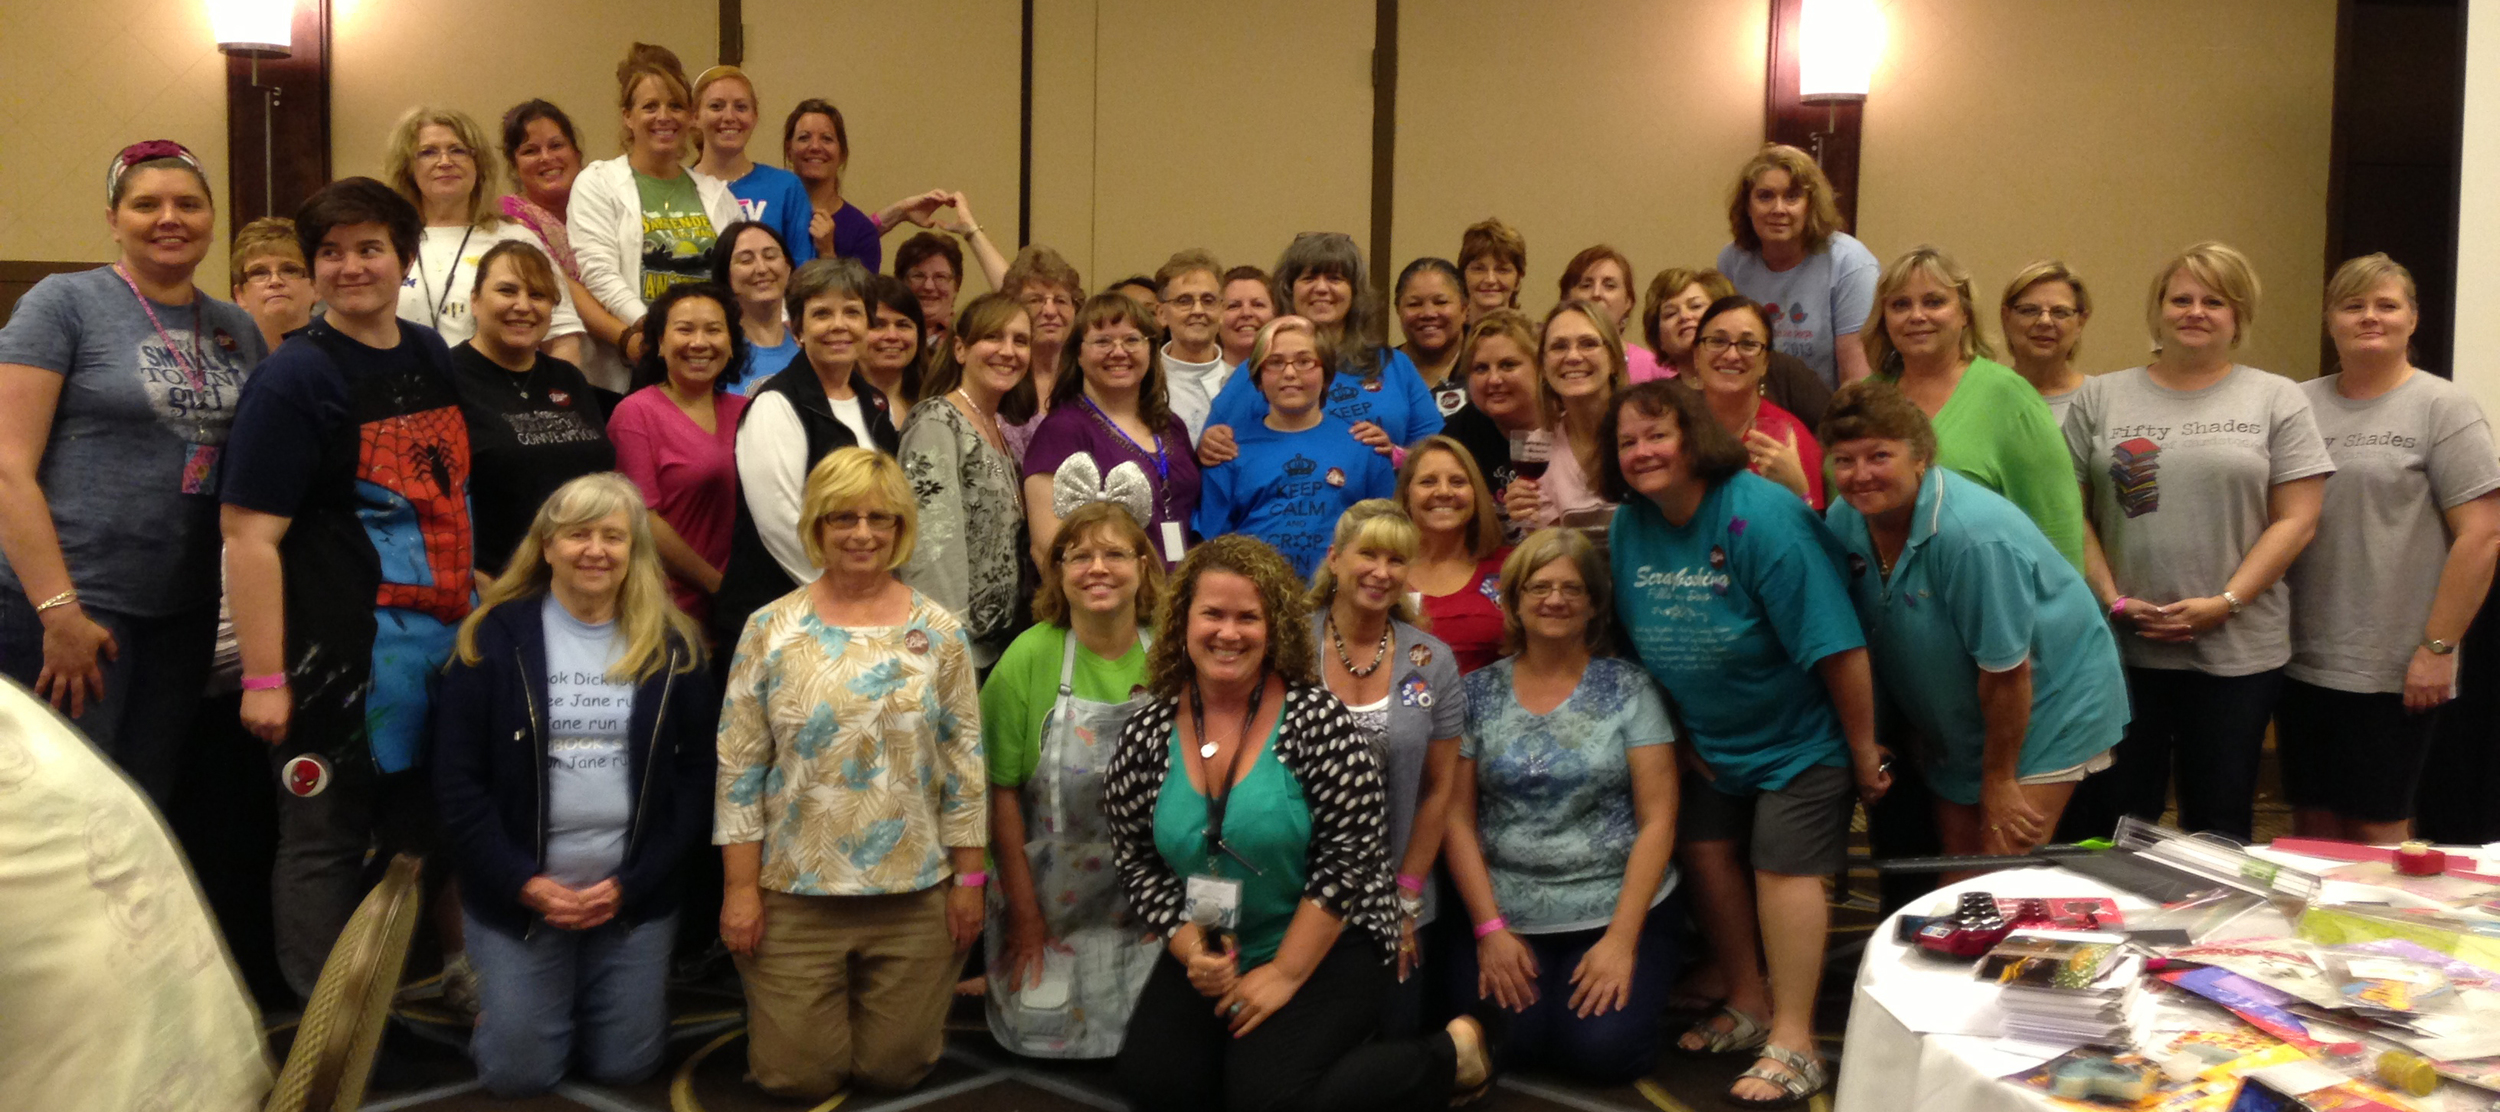 Great American Scrapbook Convention GASC crop night Arlington Texas midnight crop group photo mambi me & my BIG ideas